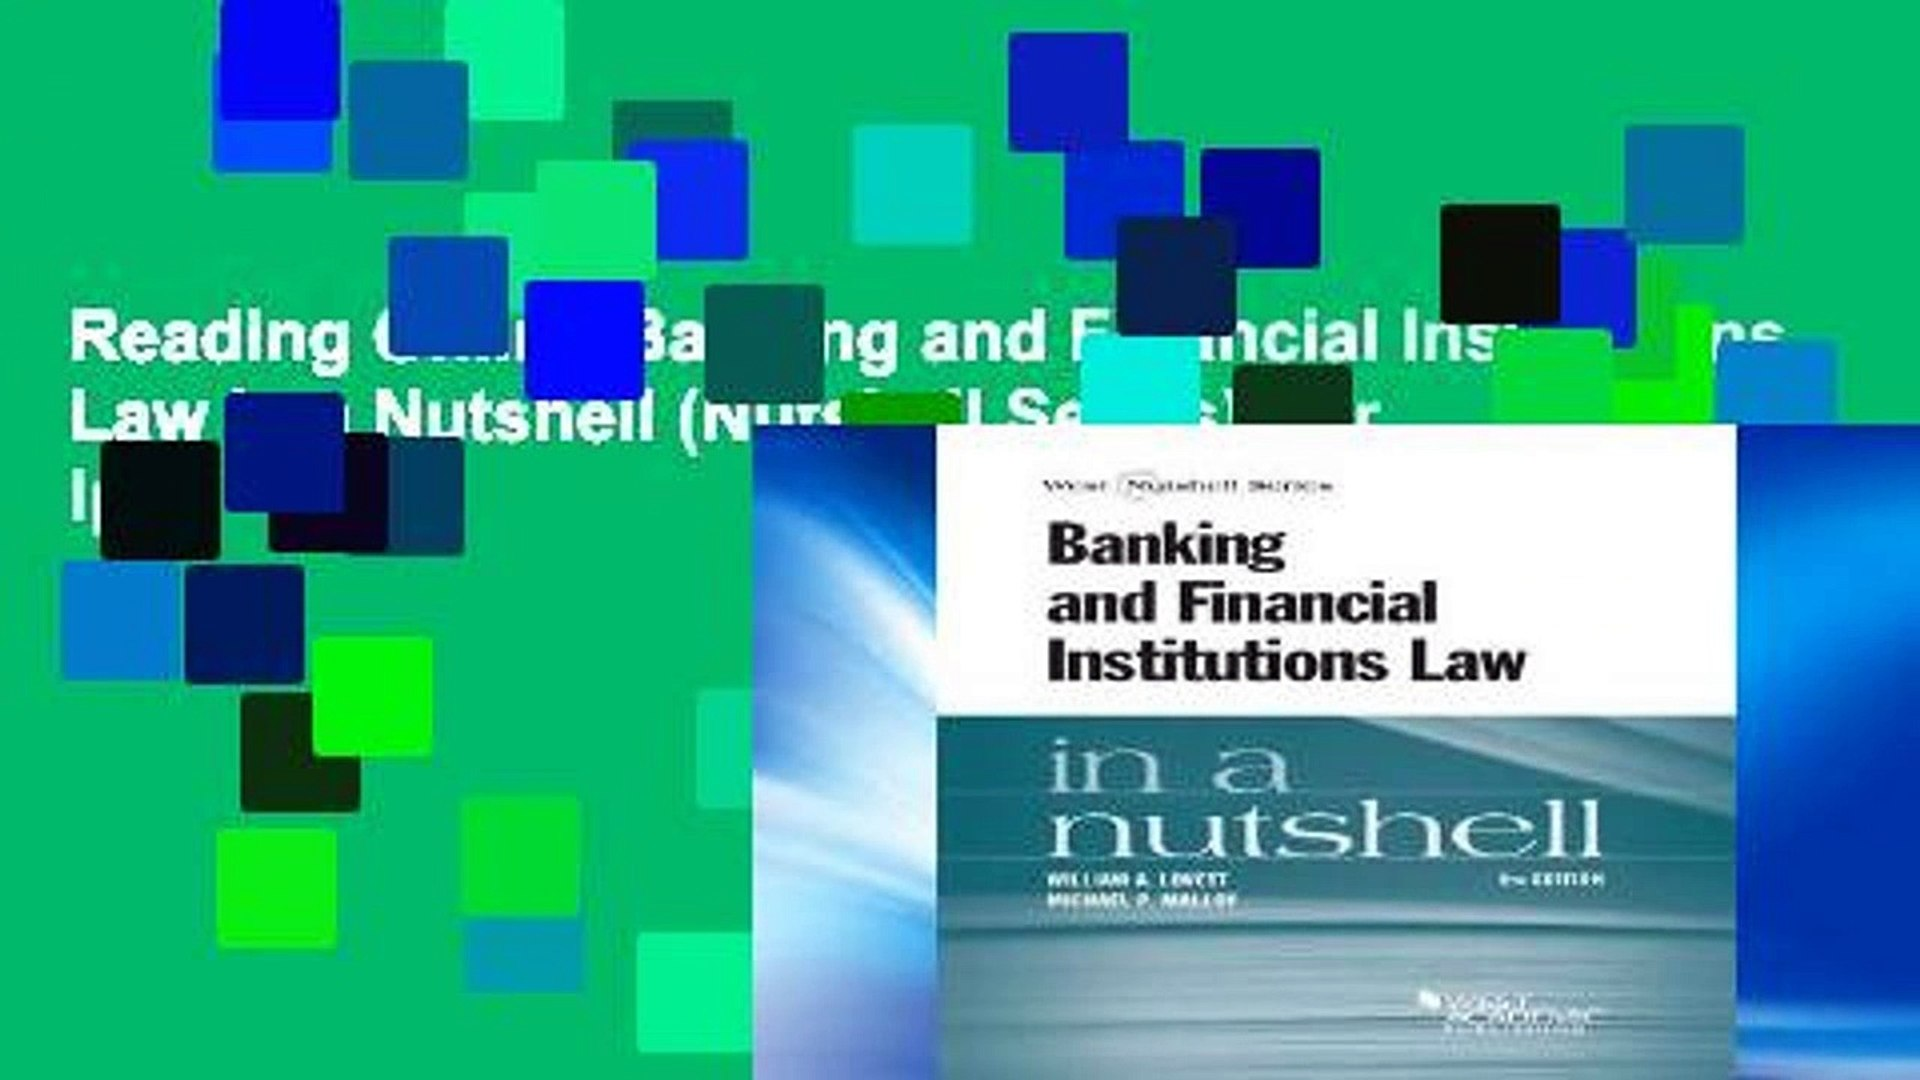 Reading Online Banking and Financial Institutions Law in a Nutshell (Nutshell Series) For Ipad